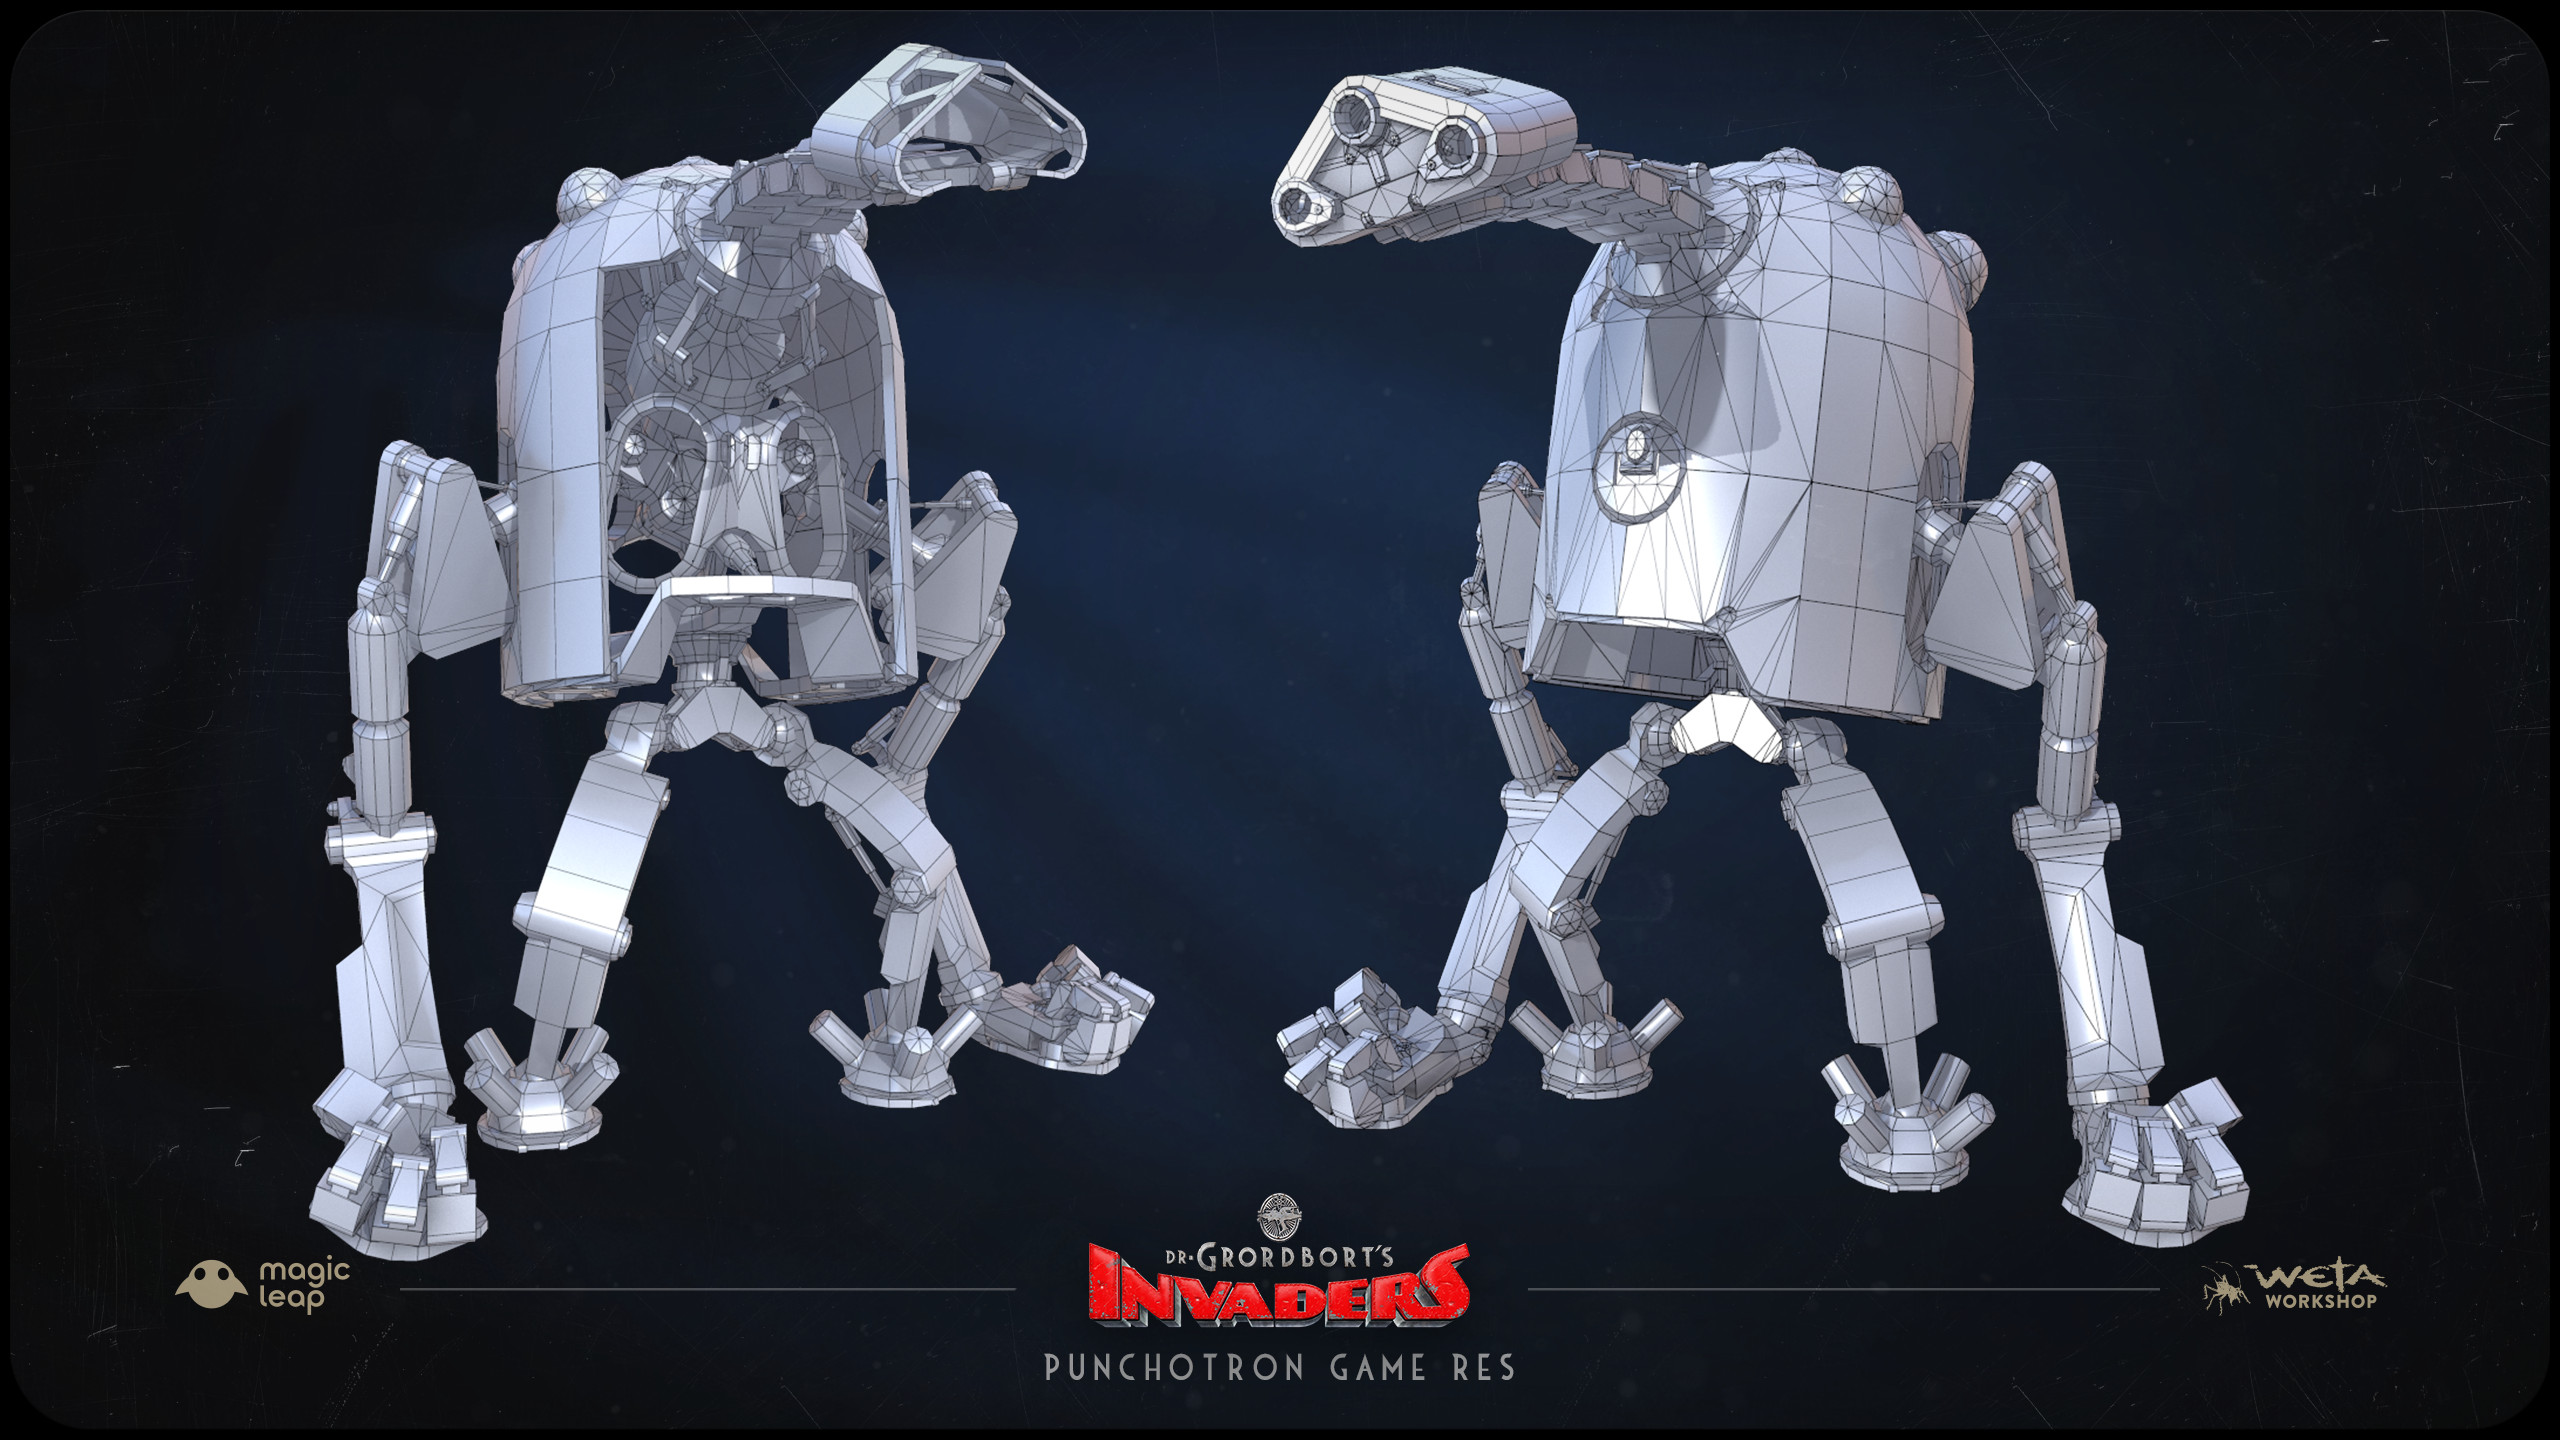 Designs by Greg Broadmore and Stephen Lambert. High and Low poly models by Jesse Barratt and Stephen Lambert.